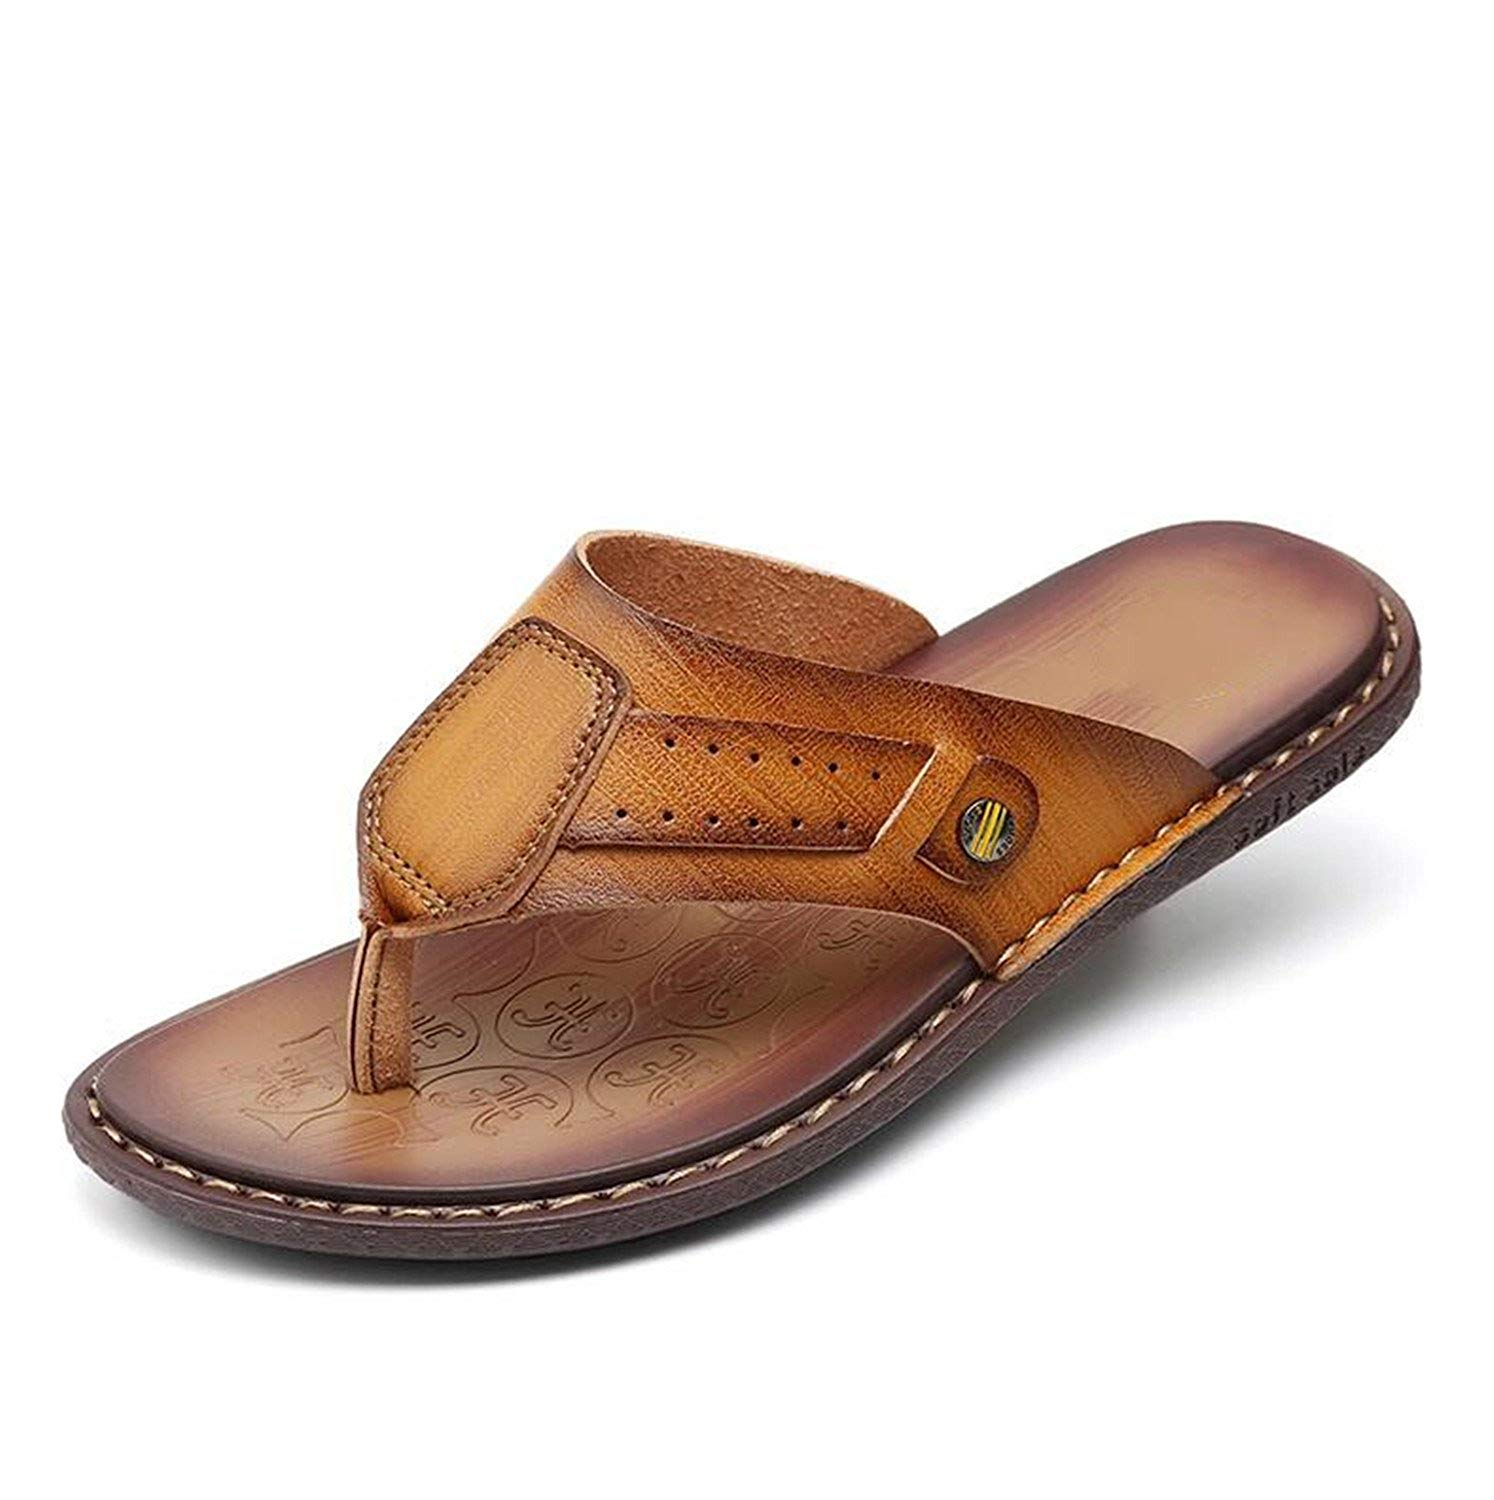 37d1f1224edfa6 Get Quotations · Marvin Cook Leather Men Slippers Flip Flops with Soft Sole  Summer Shoes Fashion Beach Sandals Shoes